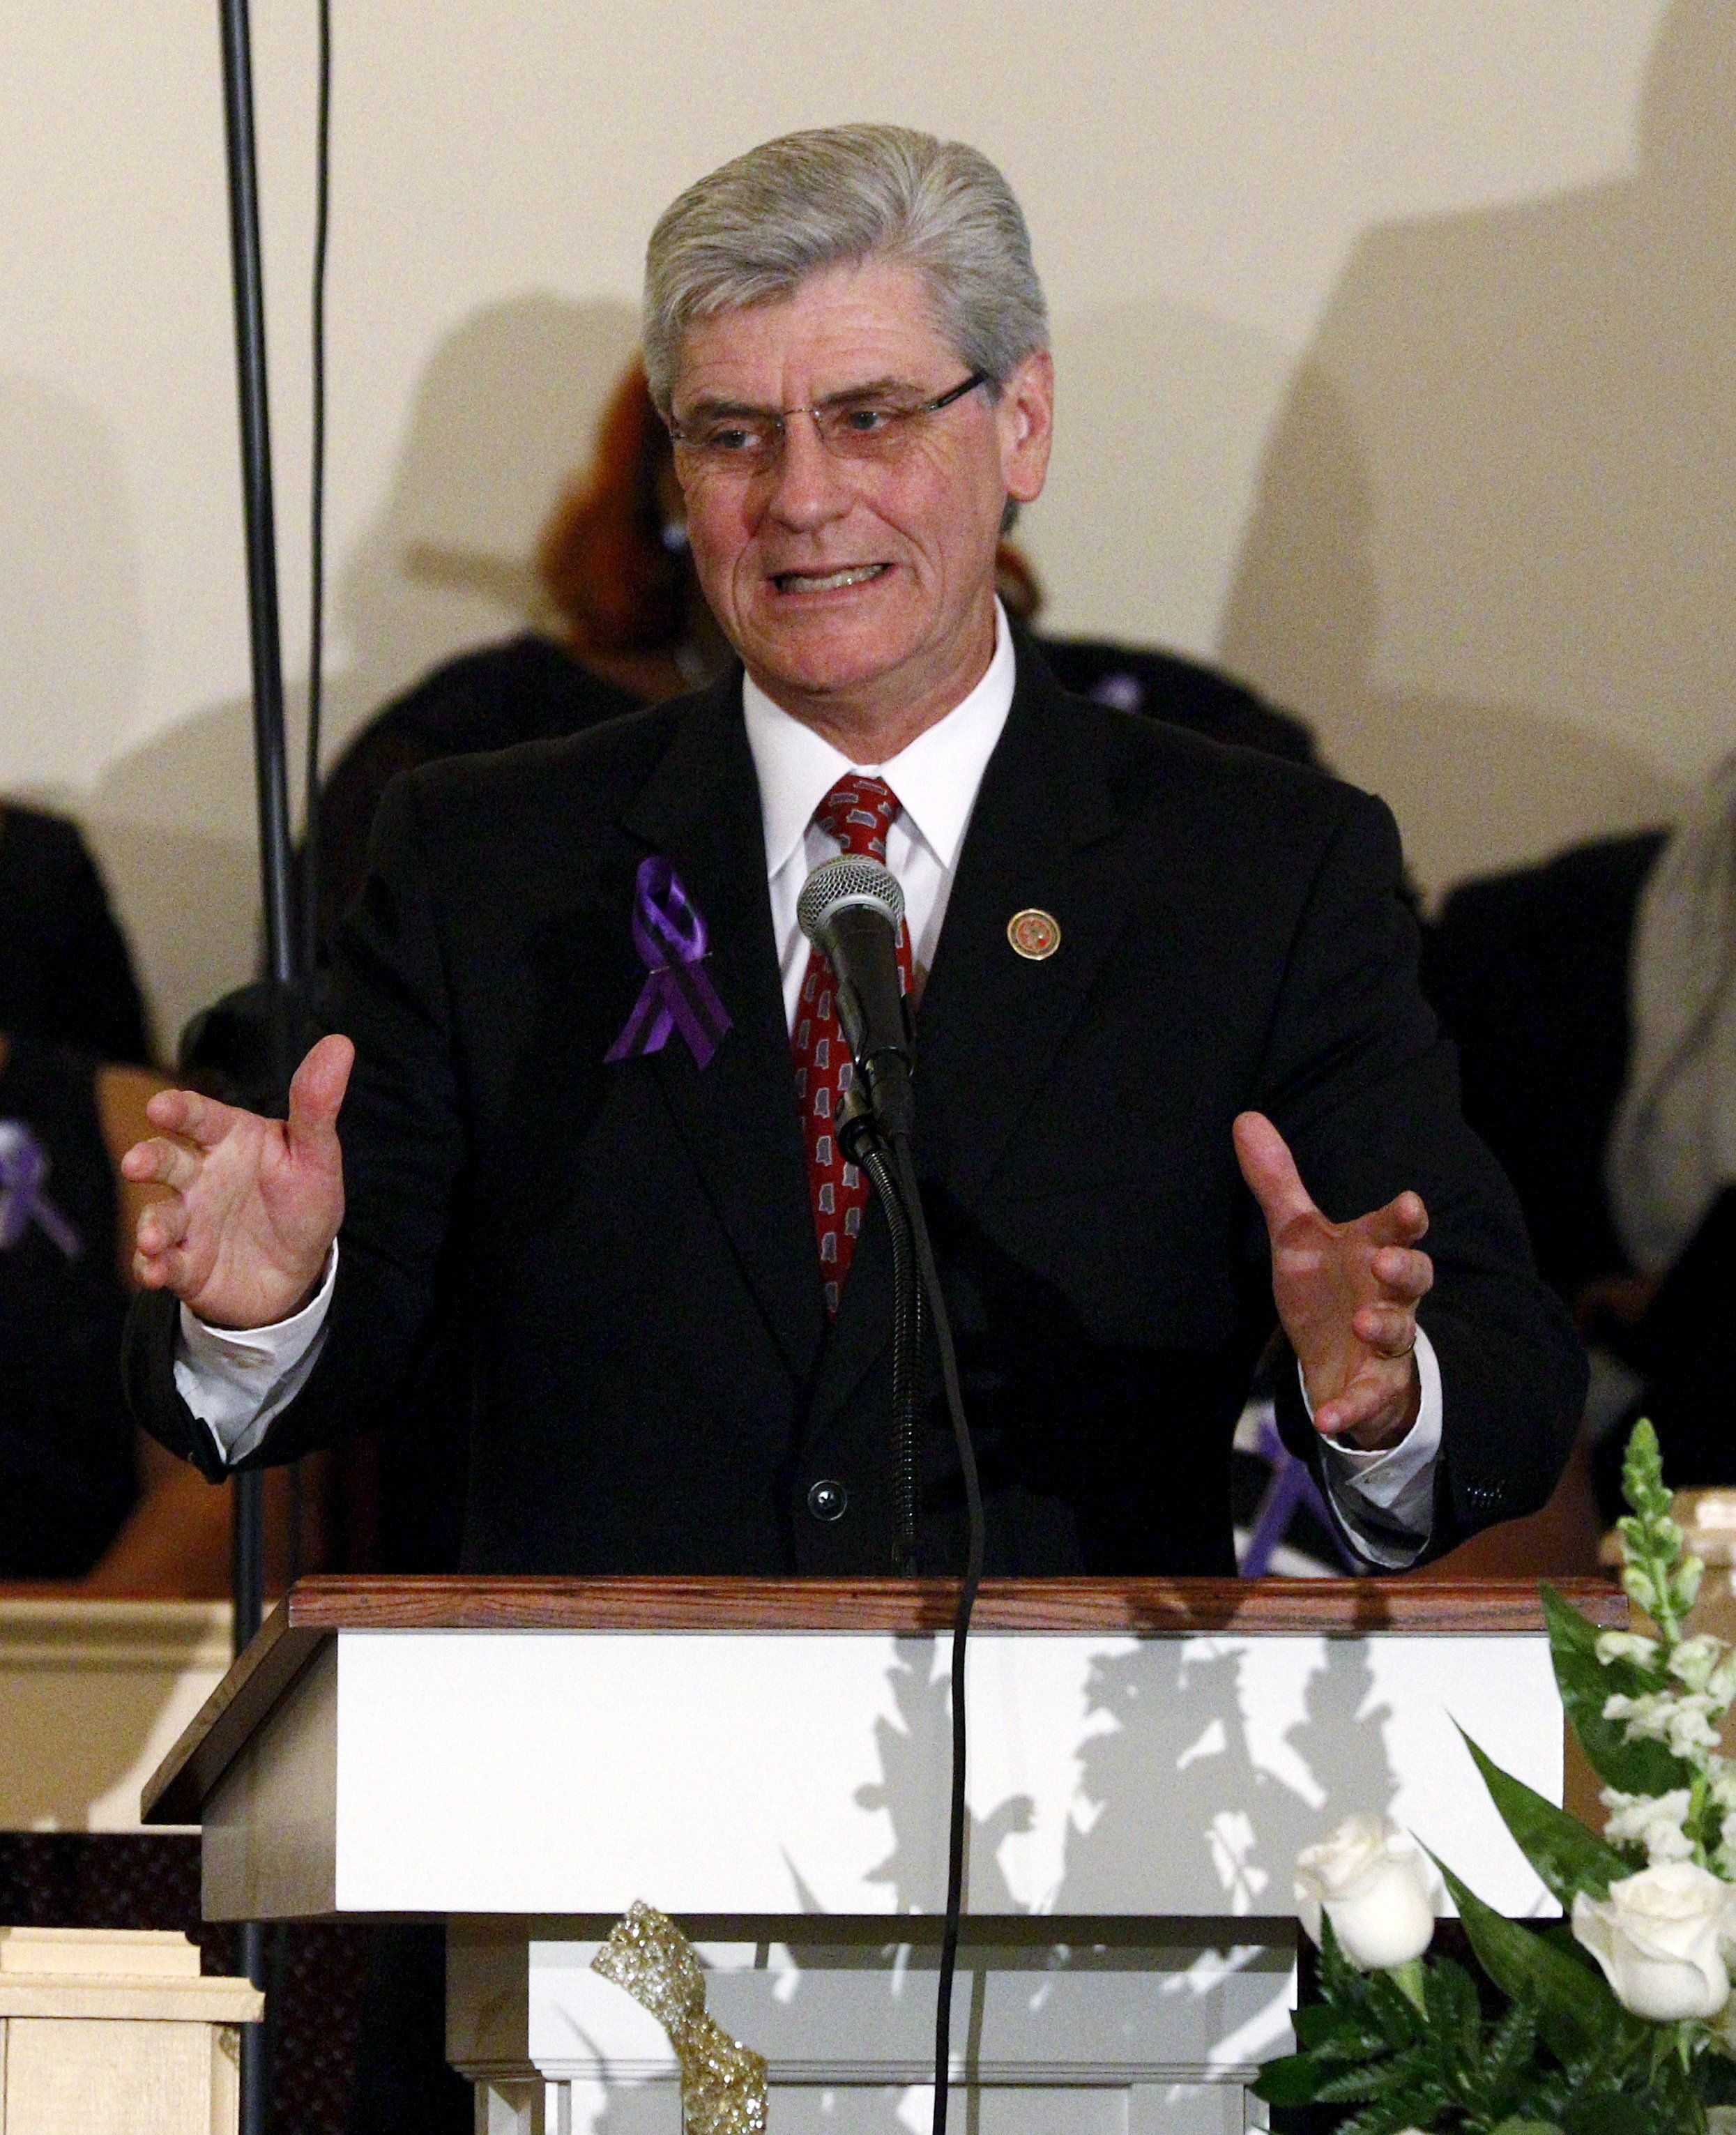 Mississippi Governor Phil Bryant speaks at B.B. King's funeral in Indianola, Mississippi May 30, 2015. King, who took his music from rural juke joints to the mainstream and inspired a generation of guitarists from Eric Clapton to Stevie Ray Vaughan, died in Las Vegas on May 14, 2015. He was 89.     REUTERS/Rogelio V. Solis/Pool